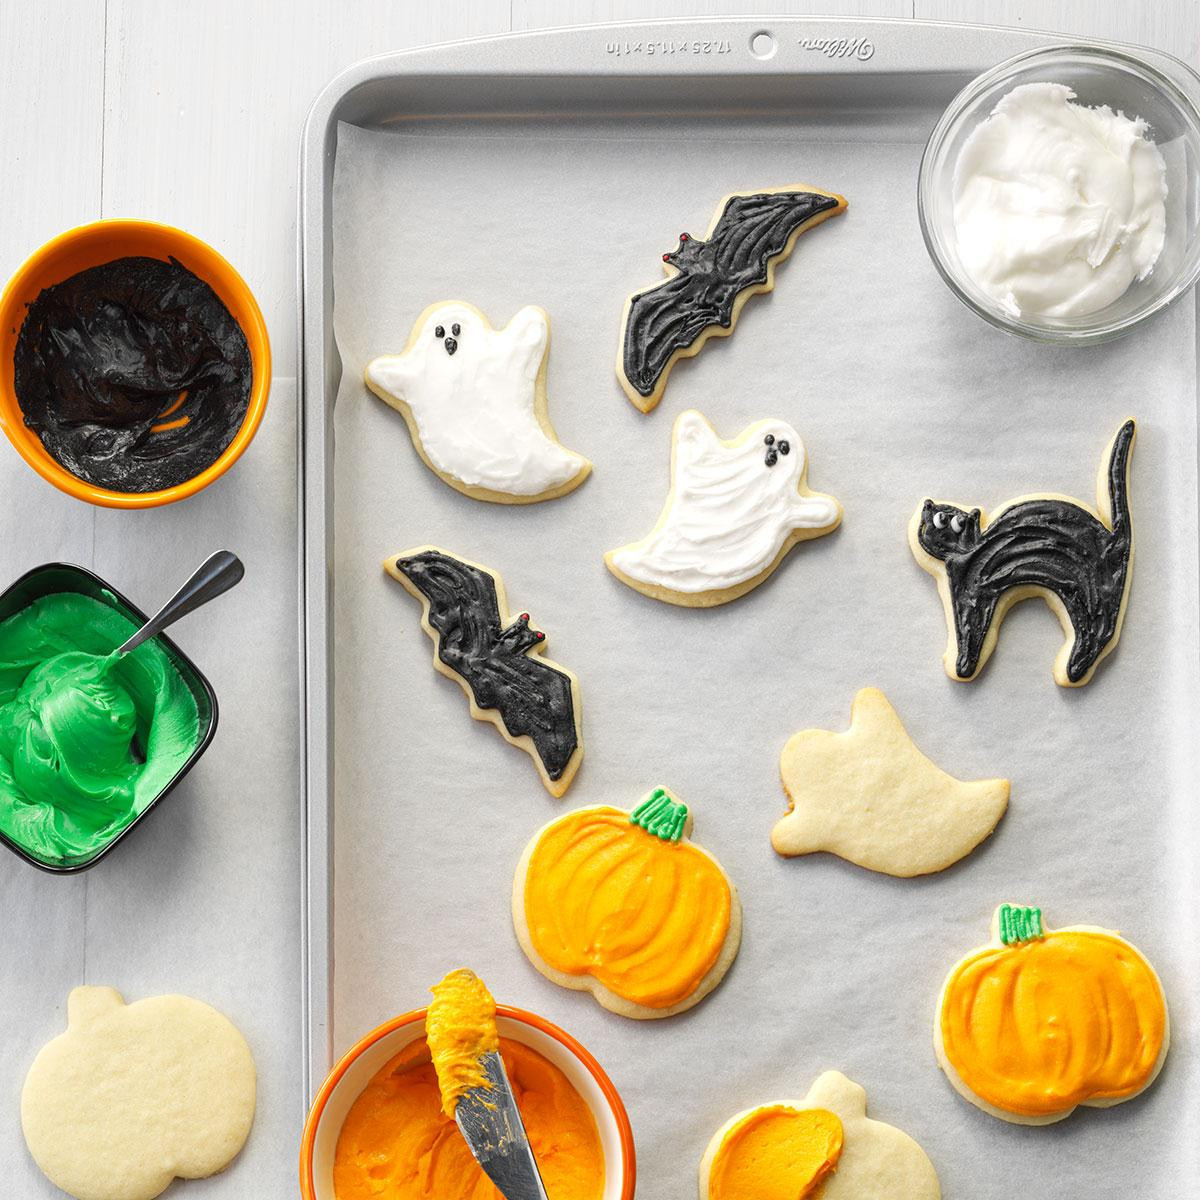 Recipes For Halloween Cookies  Halloween Party Cutout Cookies Recipe